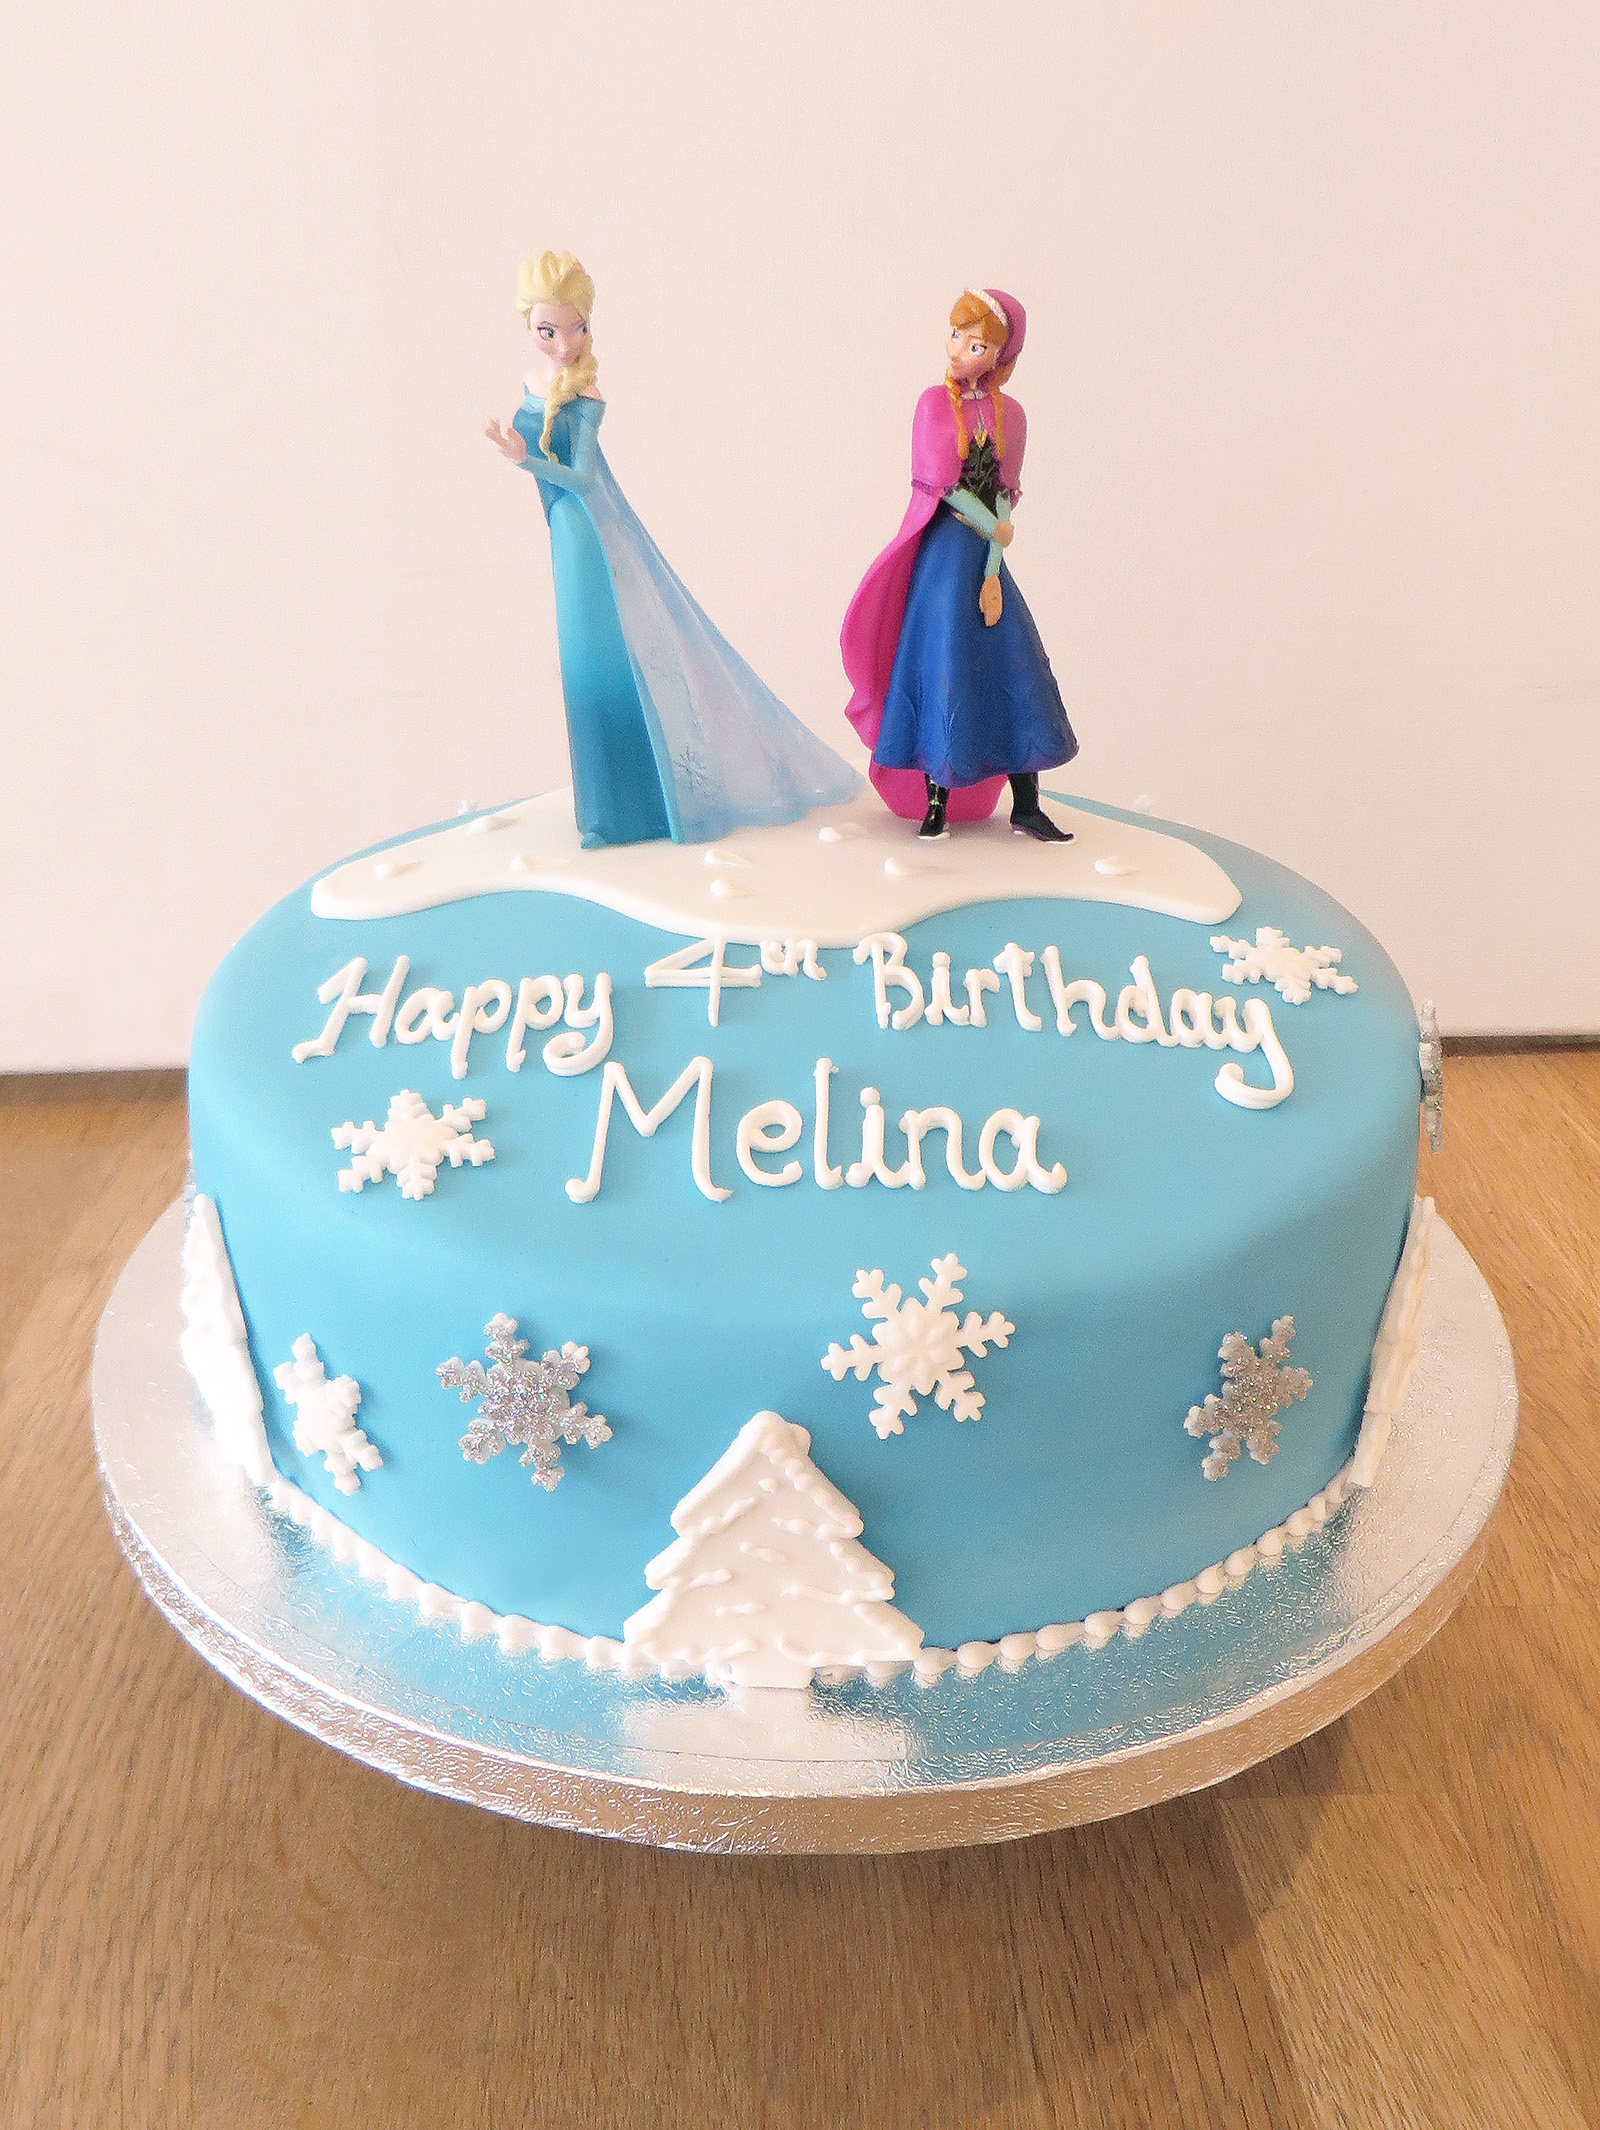 Frozen Cake Decorations Asda : Frozen Cake Asda images